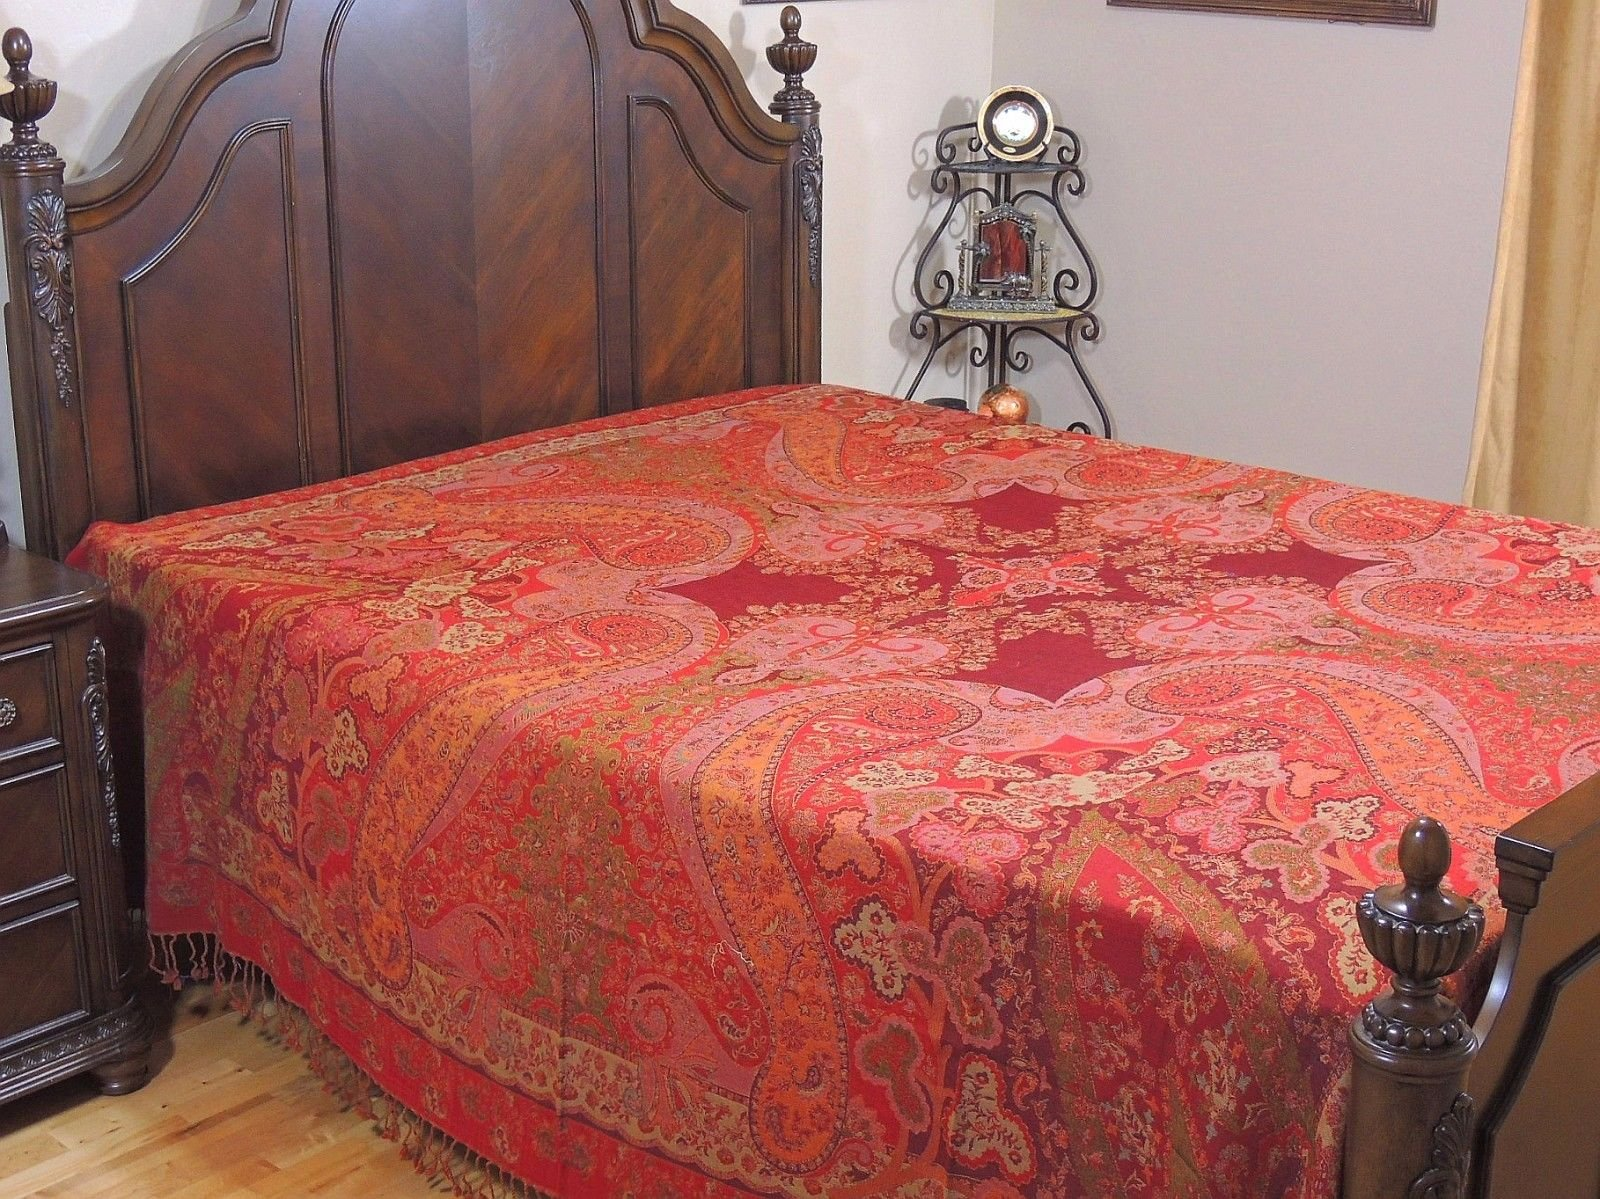 NovaHaat Maroon, Red, Pink and Tangerine 100% Wool Bedding - CHAMAN (Heavenly Garden) REVERSIBLE Indian Bedspread with Floral motifs from Kashmir - Queen 108 Inch x 90 Inch or Use as Blanket Throw